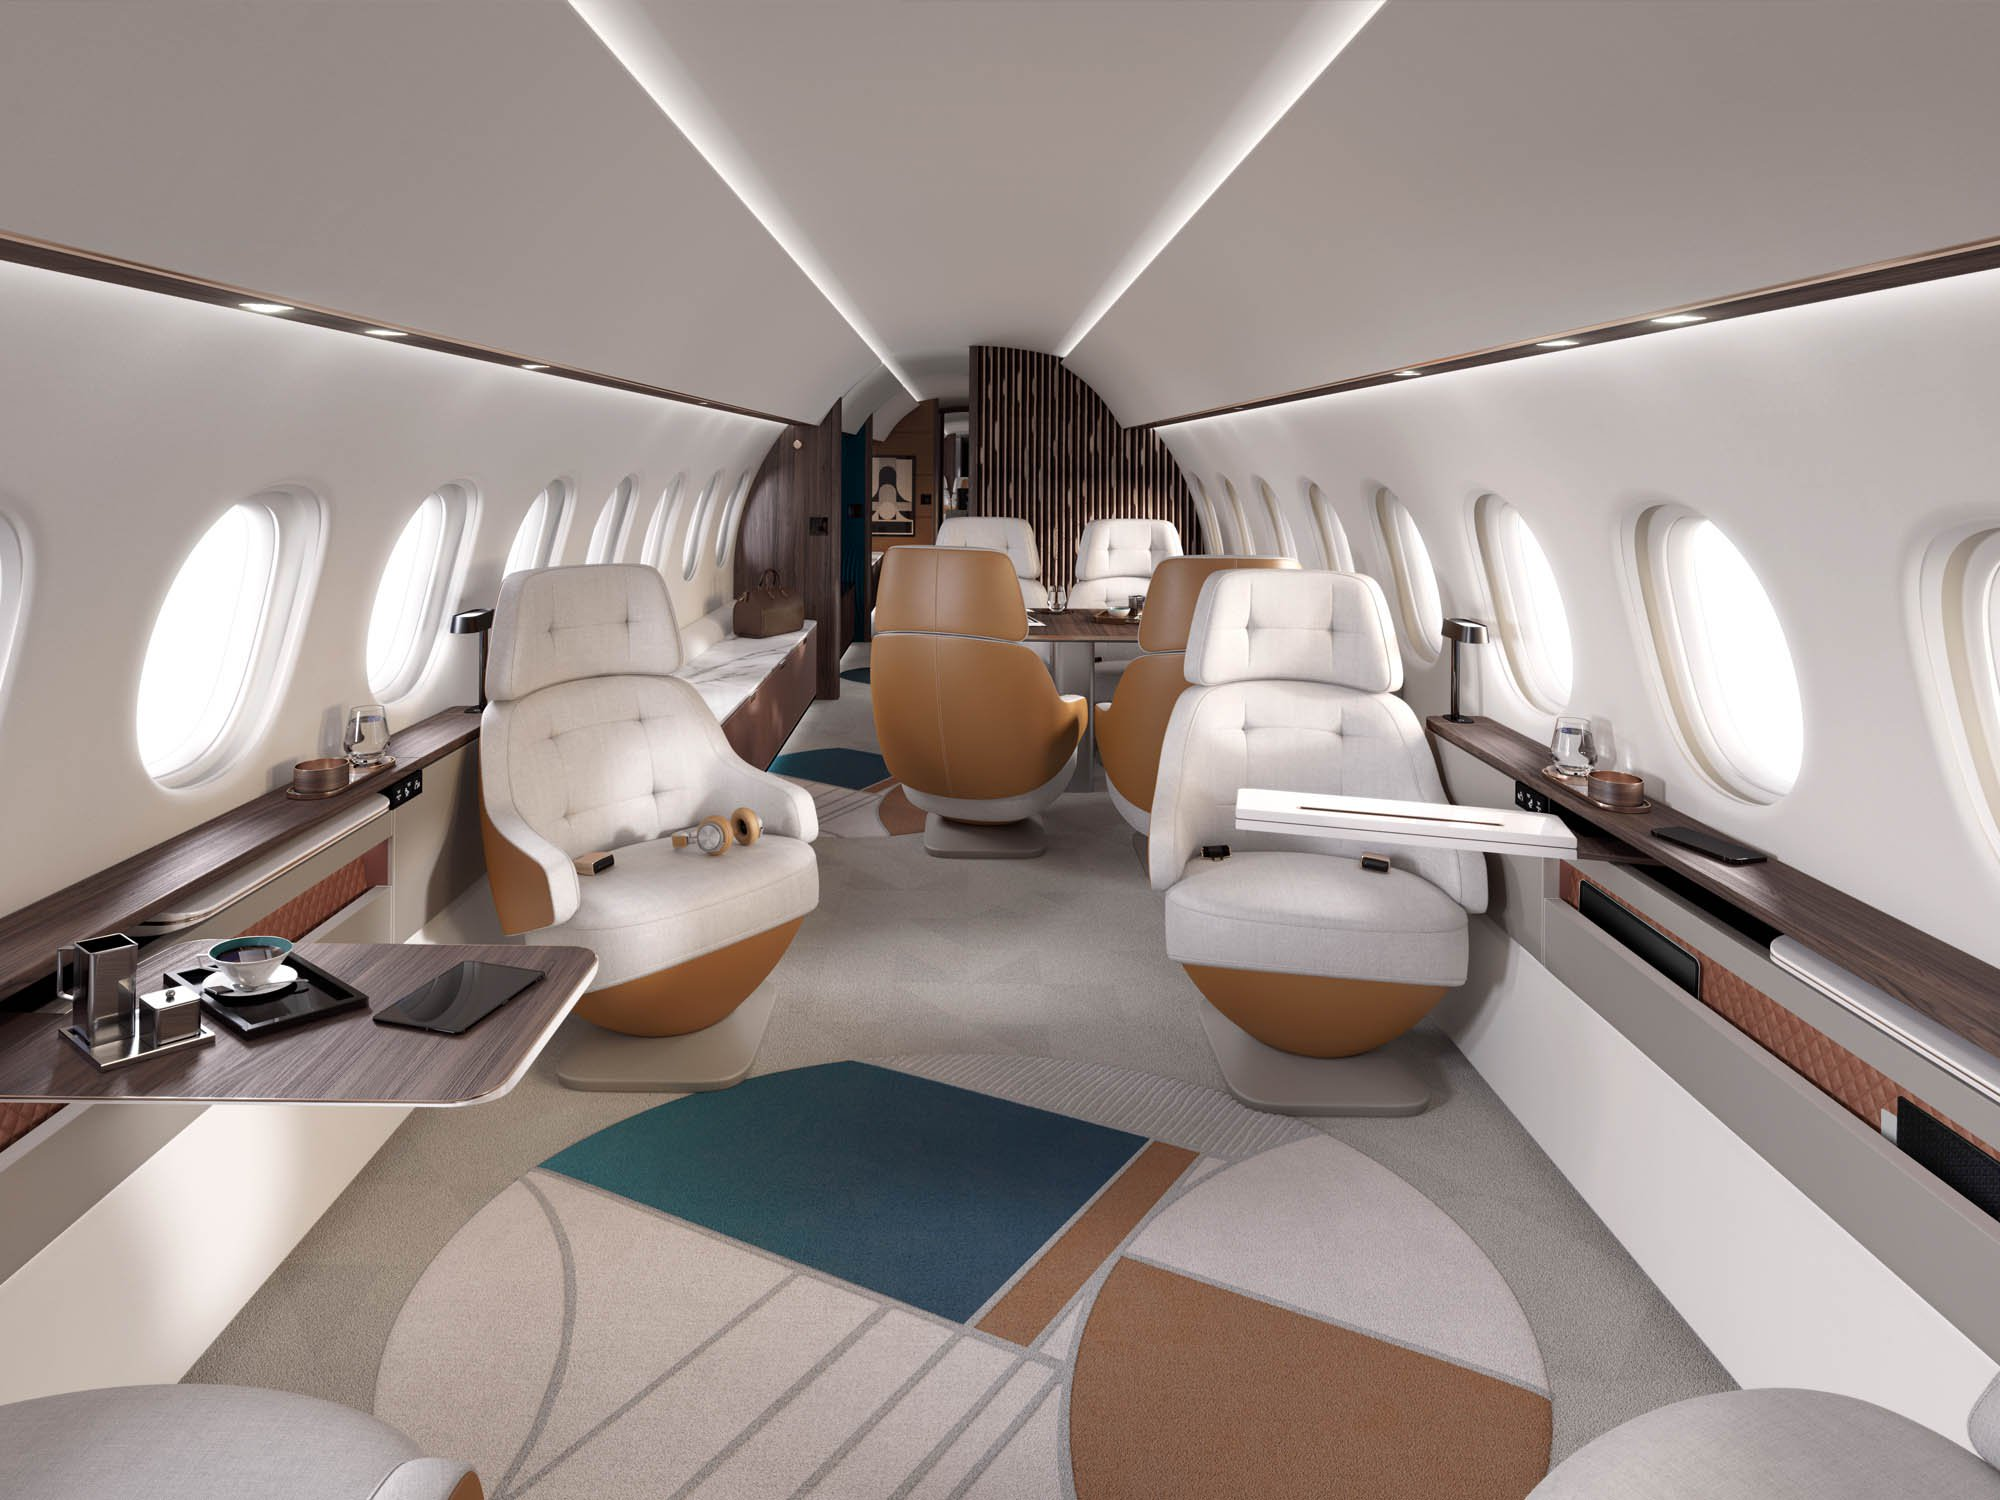 Dassault Aviation has just launched the Falcon 10X, view photos here | MORE THAN FLY